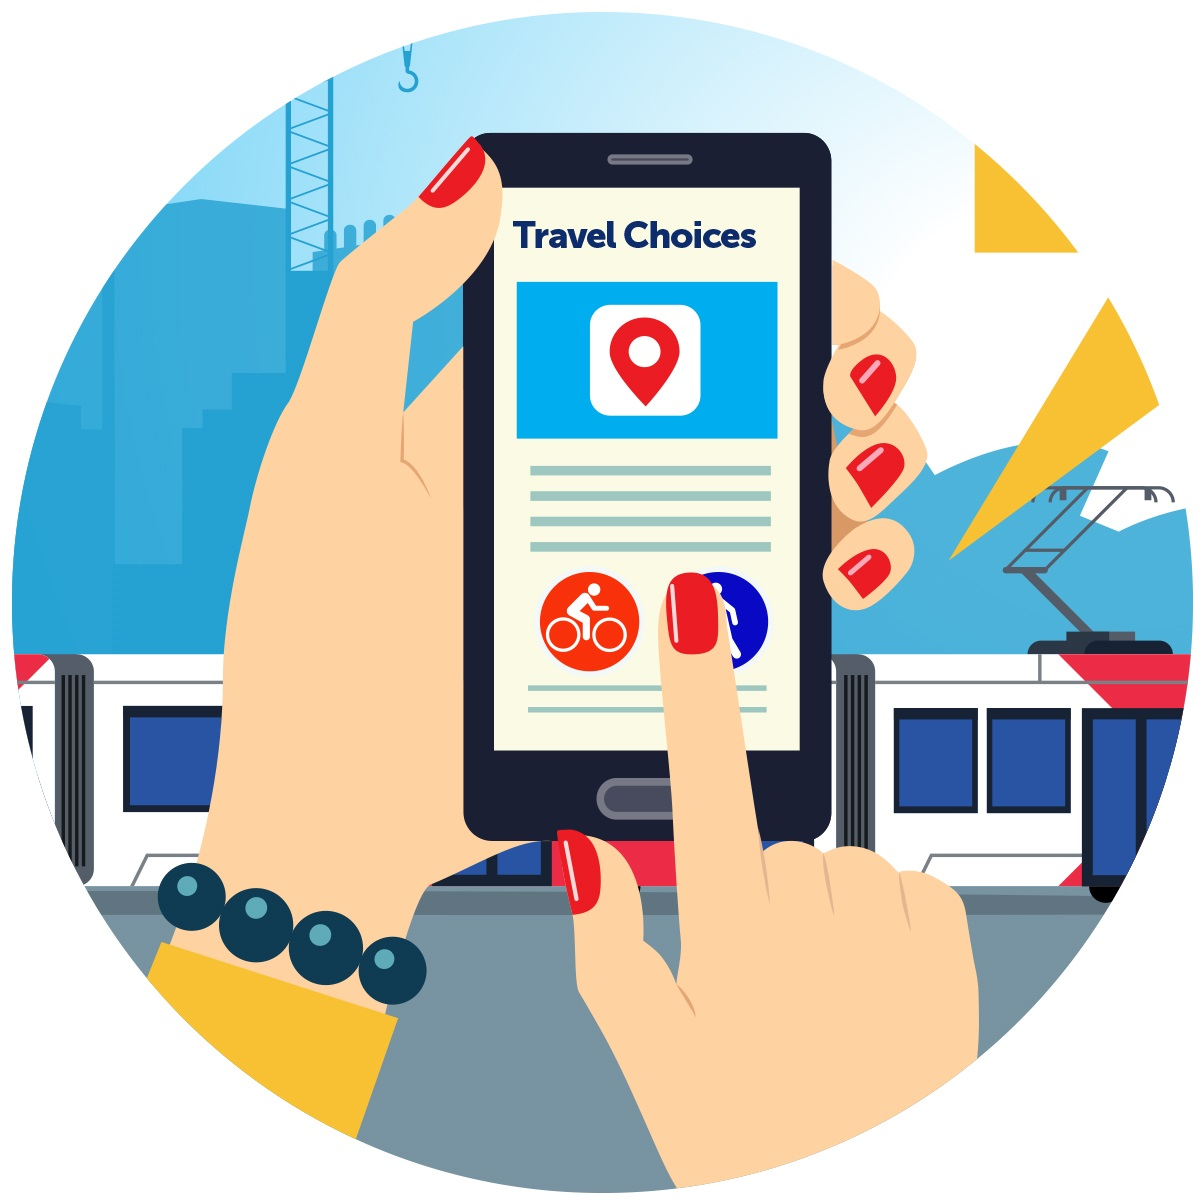 Innovation meets transport with the Travel Choices Challenge